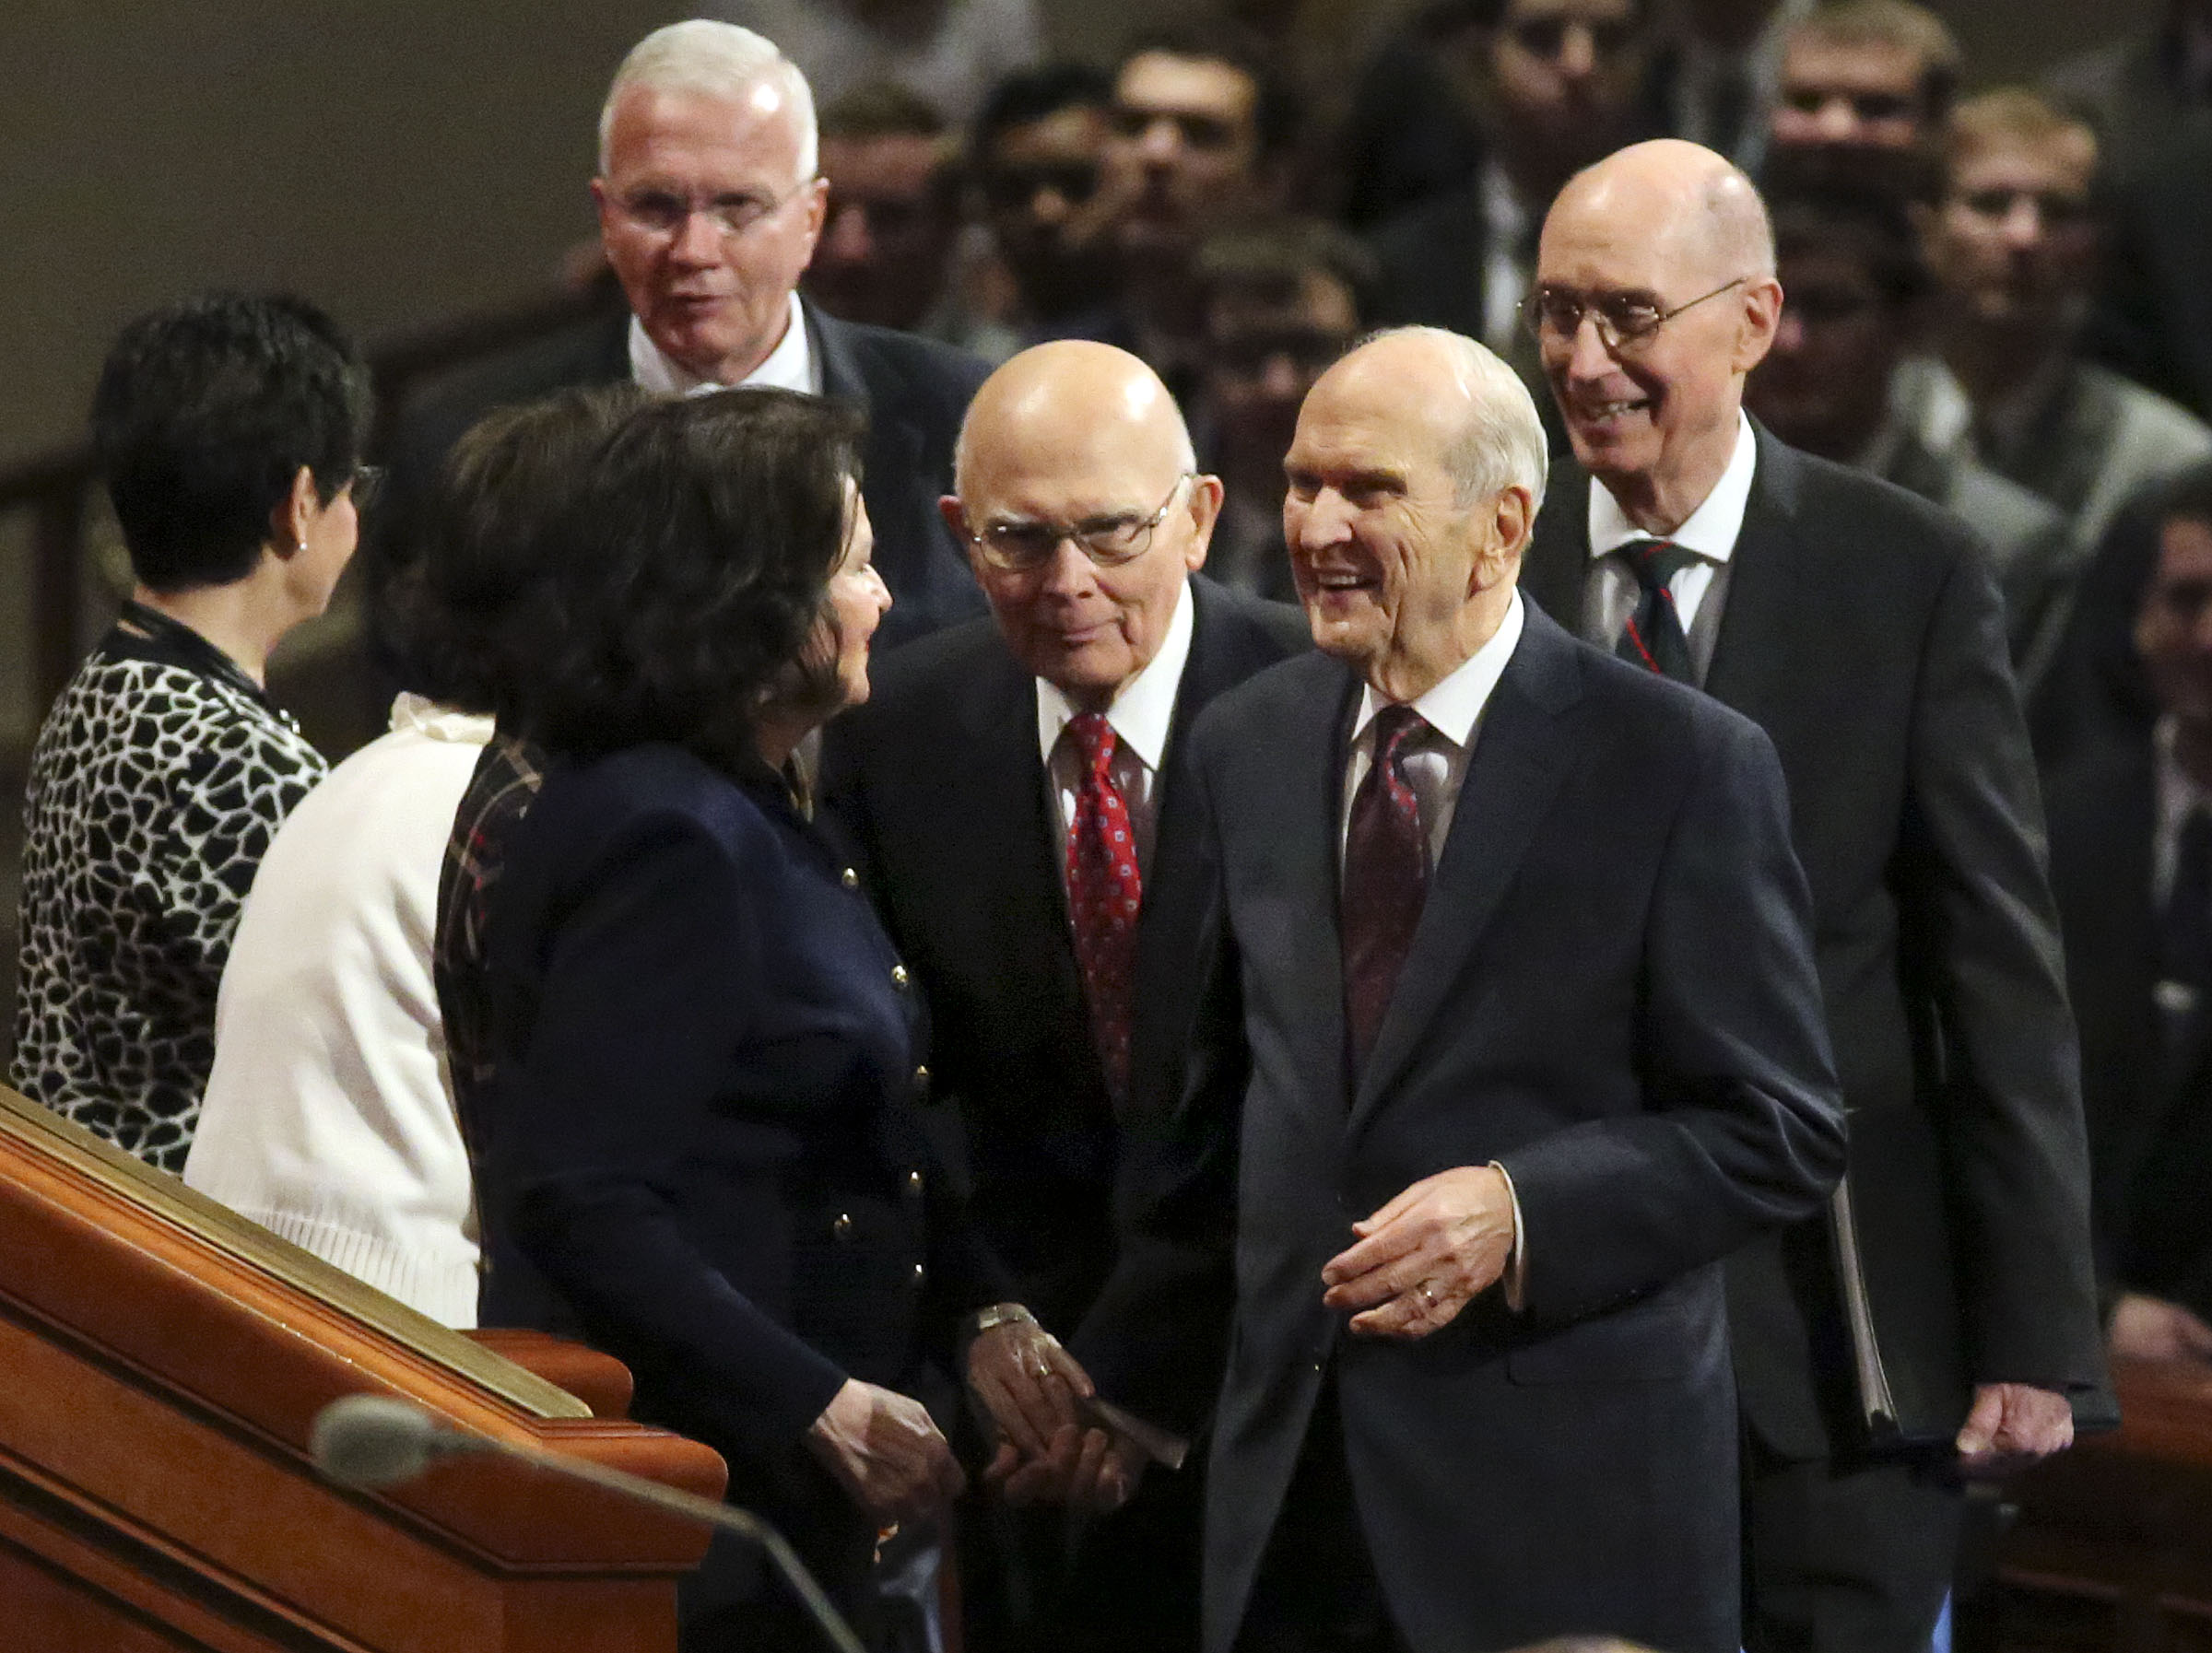 President Russell M. Nelson, President Dallin H. Oaks, first counselor in the First Presidency, and President Henry B. Eyring, second counselor in the First Presidency, enter the Sunday afternoon session of the 188th Semiannual General Conference of The Church of Jesus Christ of Latter-day Saints in the Conference Center in downtown Salt Lake City on Sunday, Oct. 7, 2018.